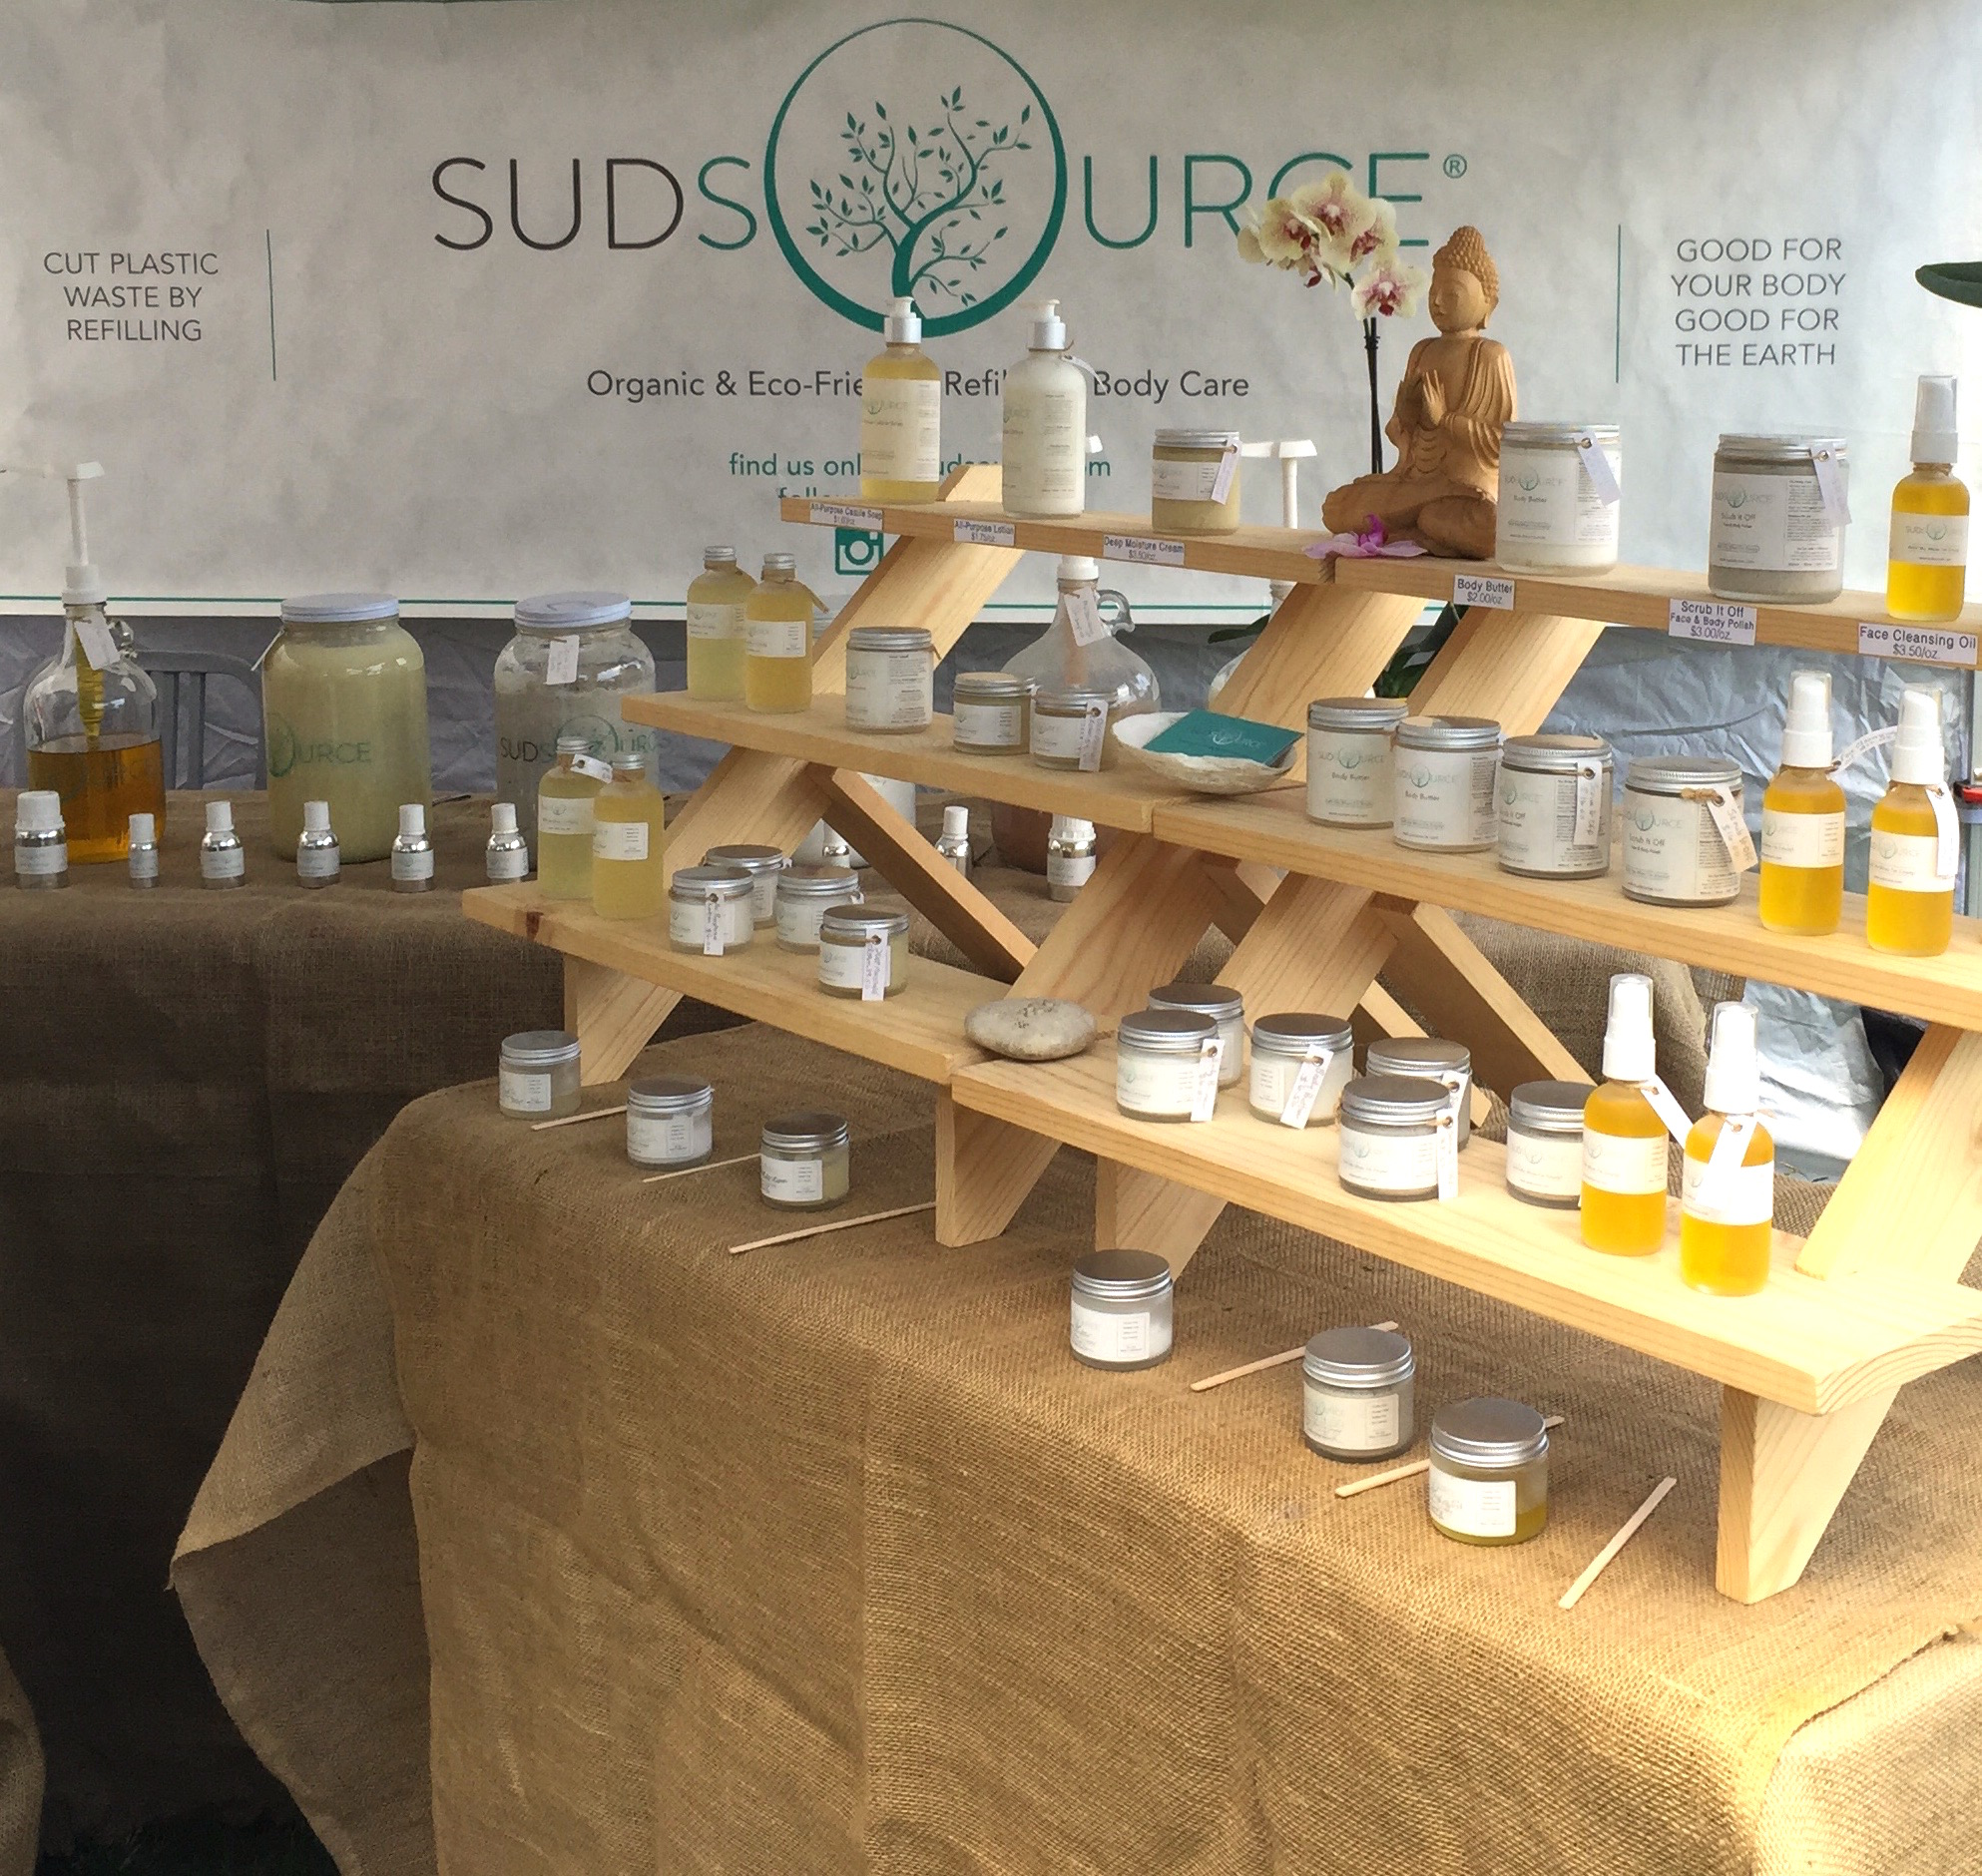 The Sudsource booth at local LA markets allows you to test out a full range of their products. You can also bring in your own glass containers and get refills of your favorites!